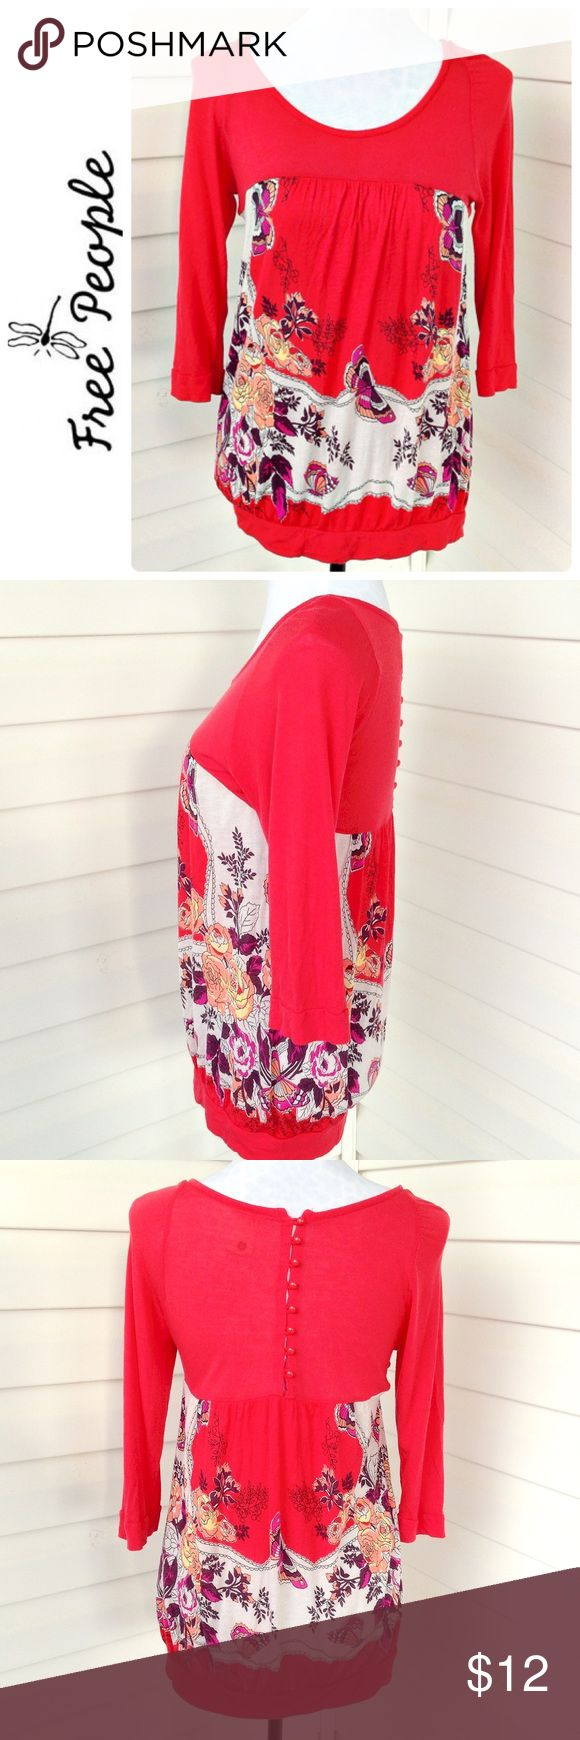 """❣️BOGO Free ❣️ Free People Red Tunic Red stretchy tunic with very pretty butterfly and floral design.   Fits Size S-M Tag says L but definitely runs small.  Length 26""""  Armpit to armpit 16"""" 3/4 sleeves  100% viscose  Good preloved condition with slight pilling under sleeves and bottom band. Shirt is still very wearable and very cute!! Free People Tops"""